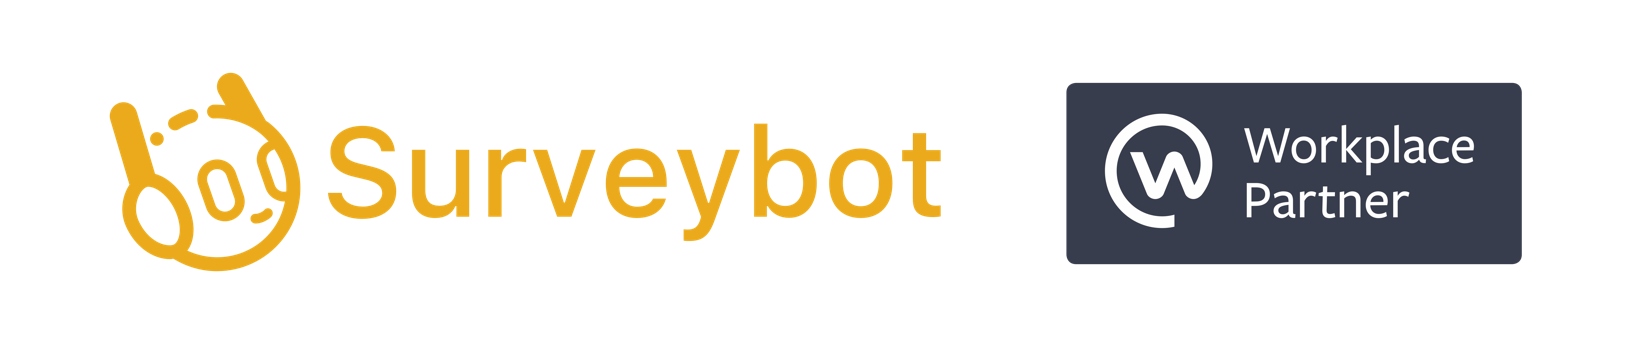 Surveybot Faceboook Workplace Integration